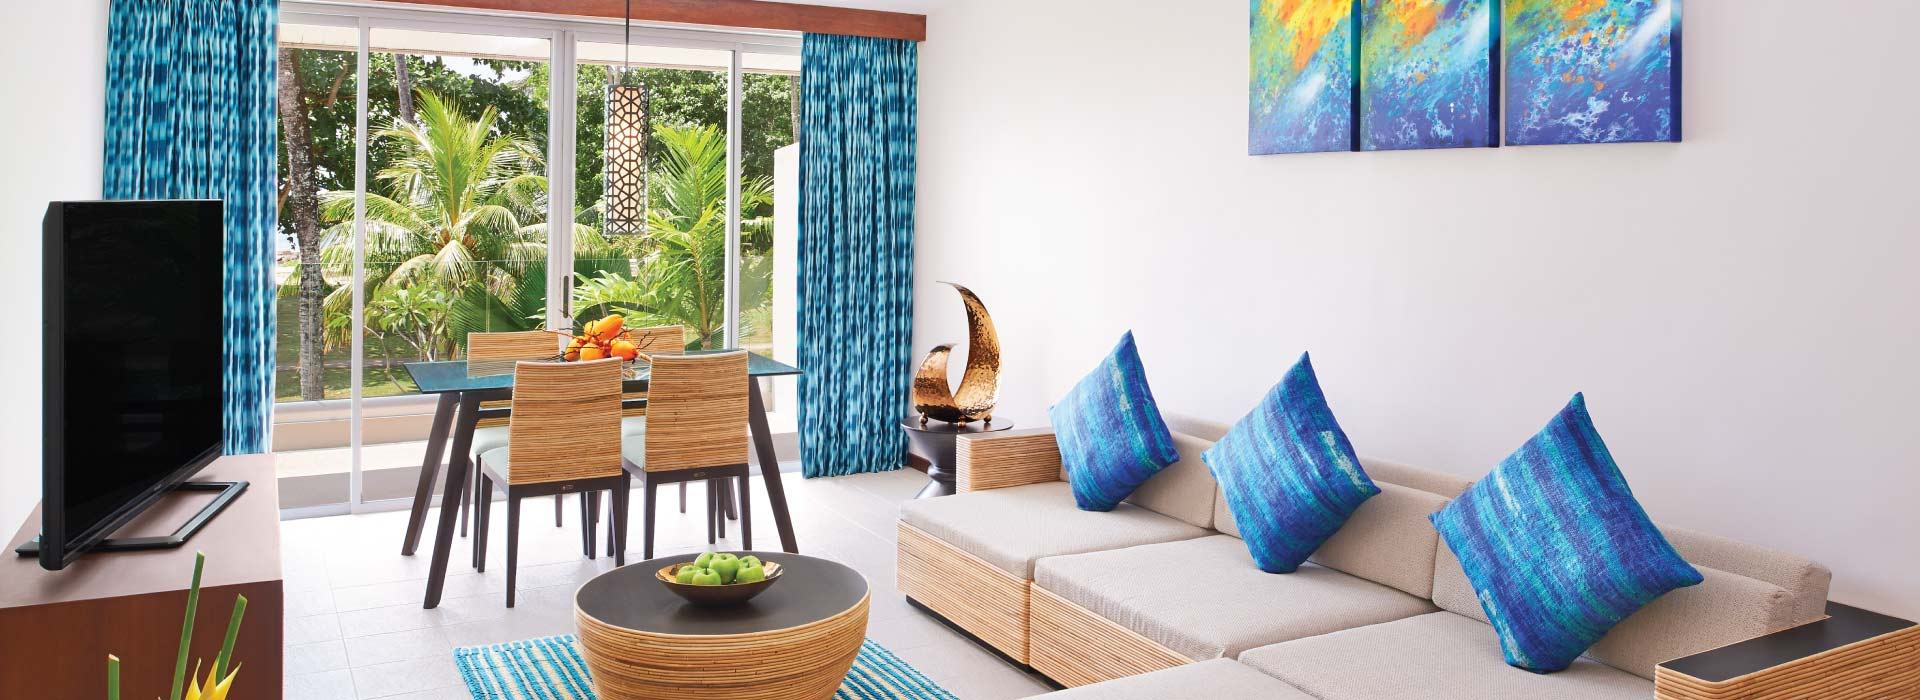 Ocean view suite at AVANI Seychelles beach resort